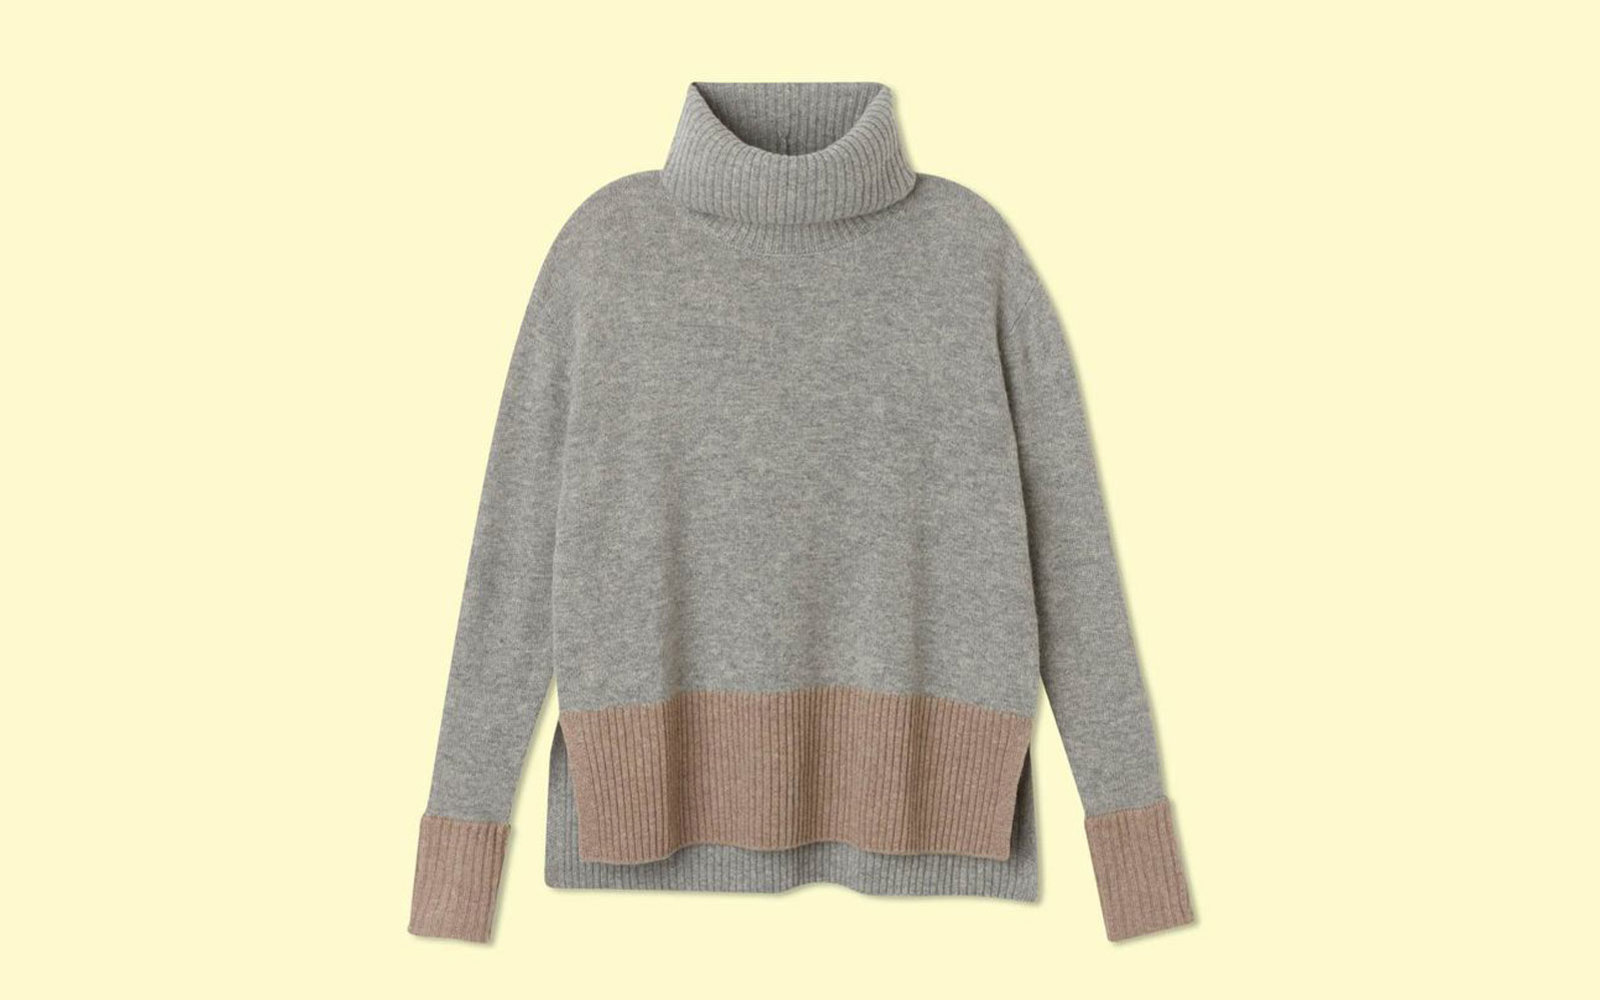 Grey and Camel Cashmere Turtleneck